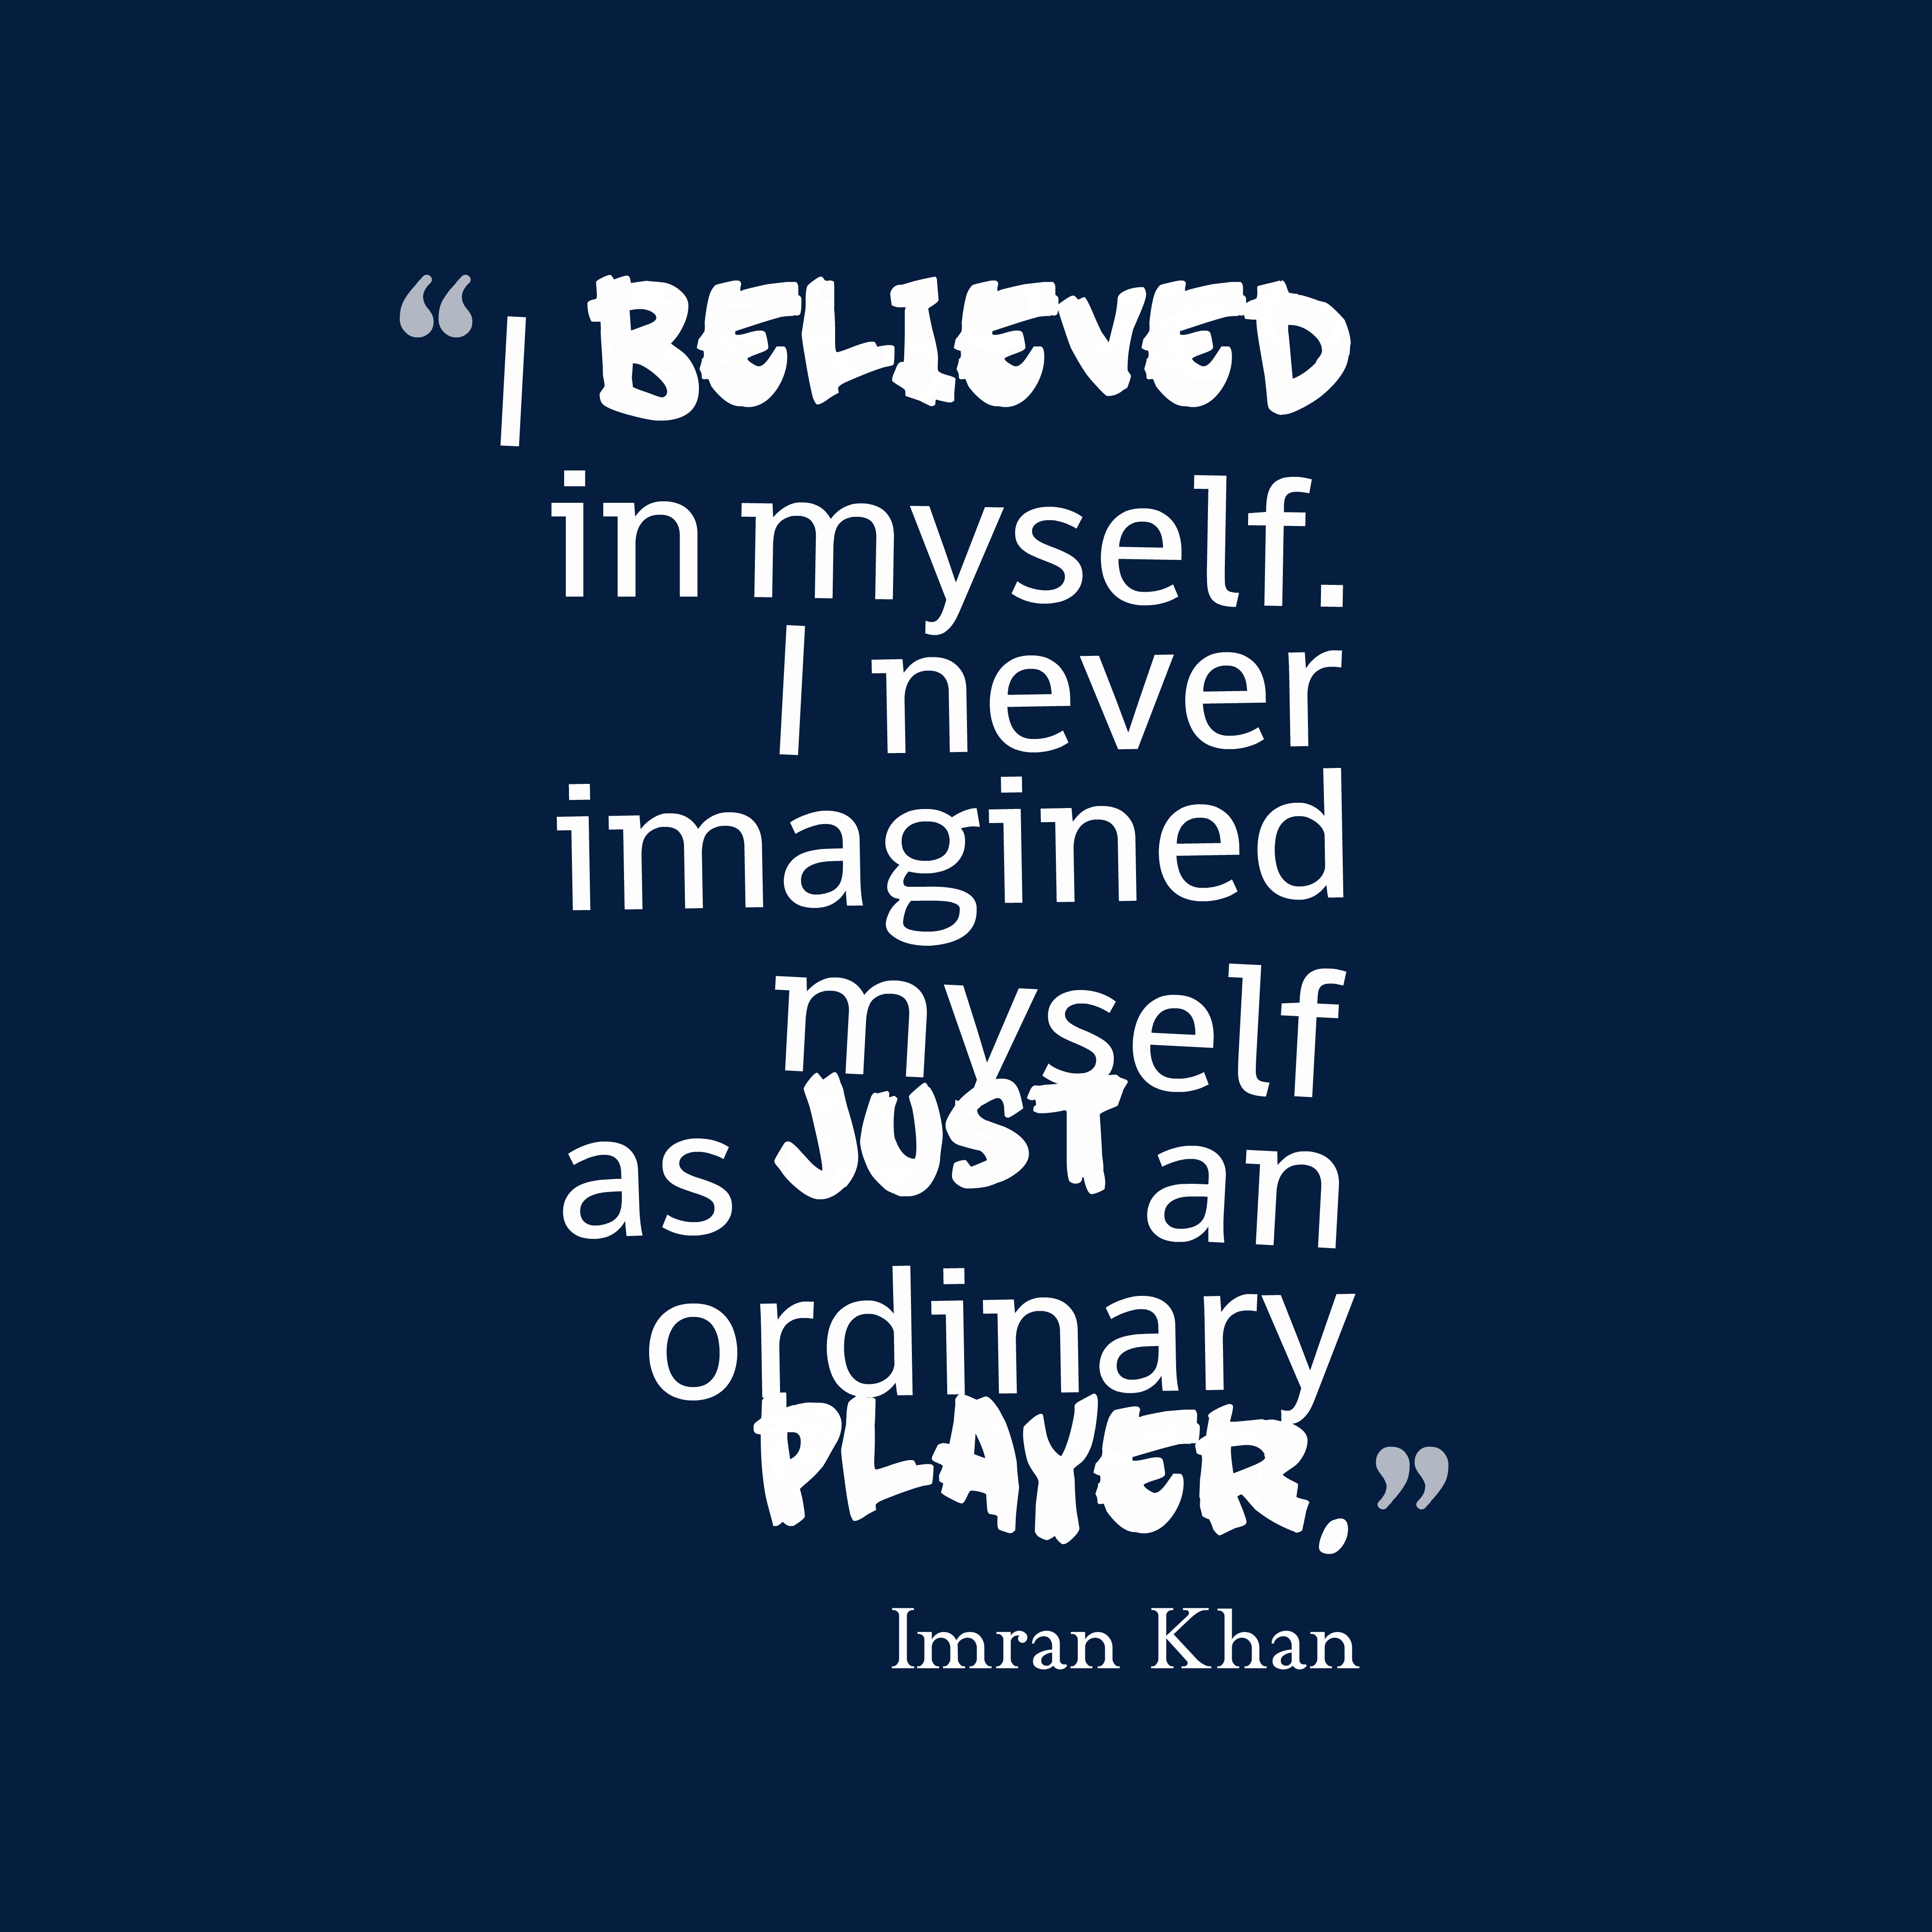 Quotes image of I believed in myself. I never imagined myself as just an ordinary player.